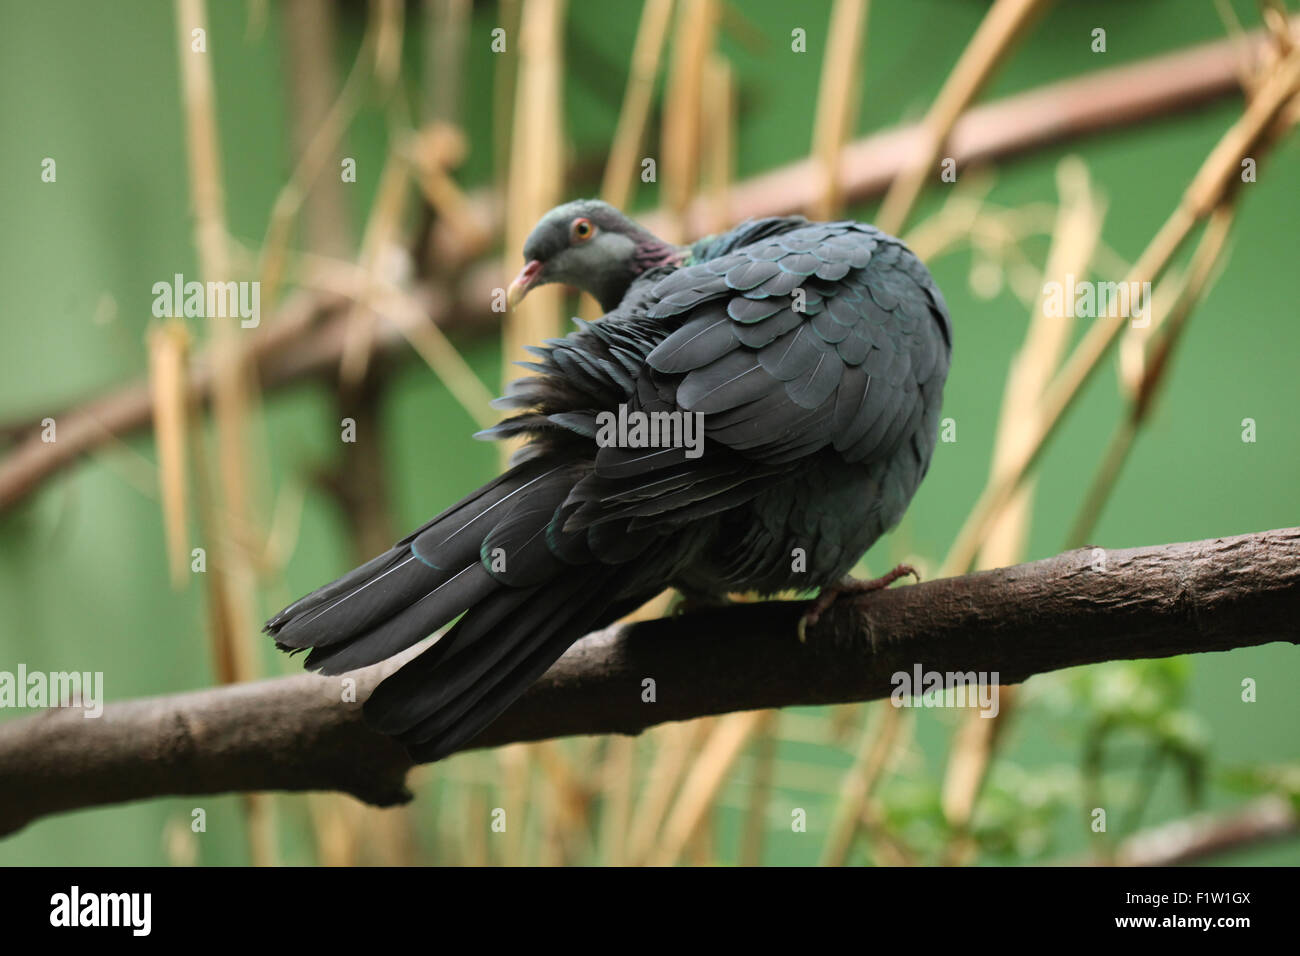 Metallic pigeon (Columba vitiensis griseogularis), also known as the white-throated pigeon at Plzen Zoo in West - Stock Image